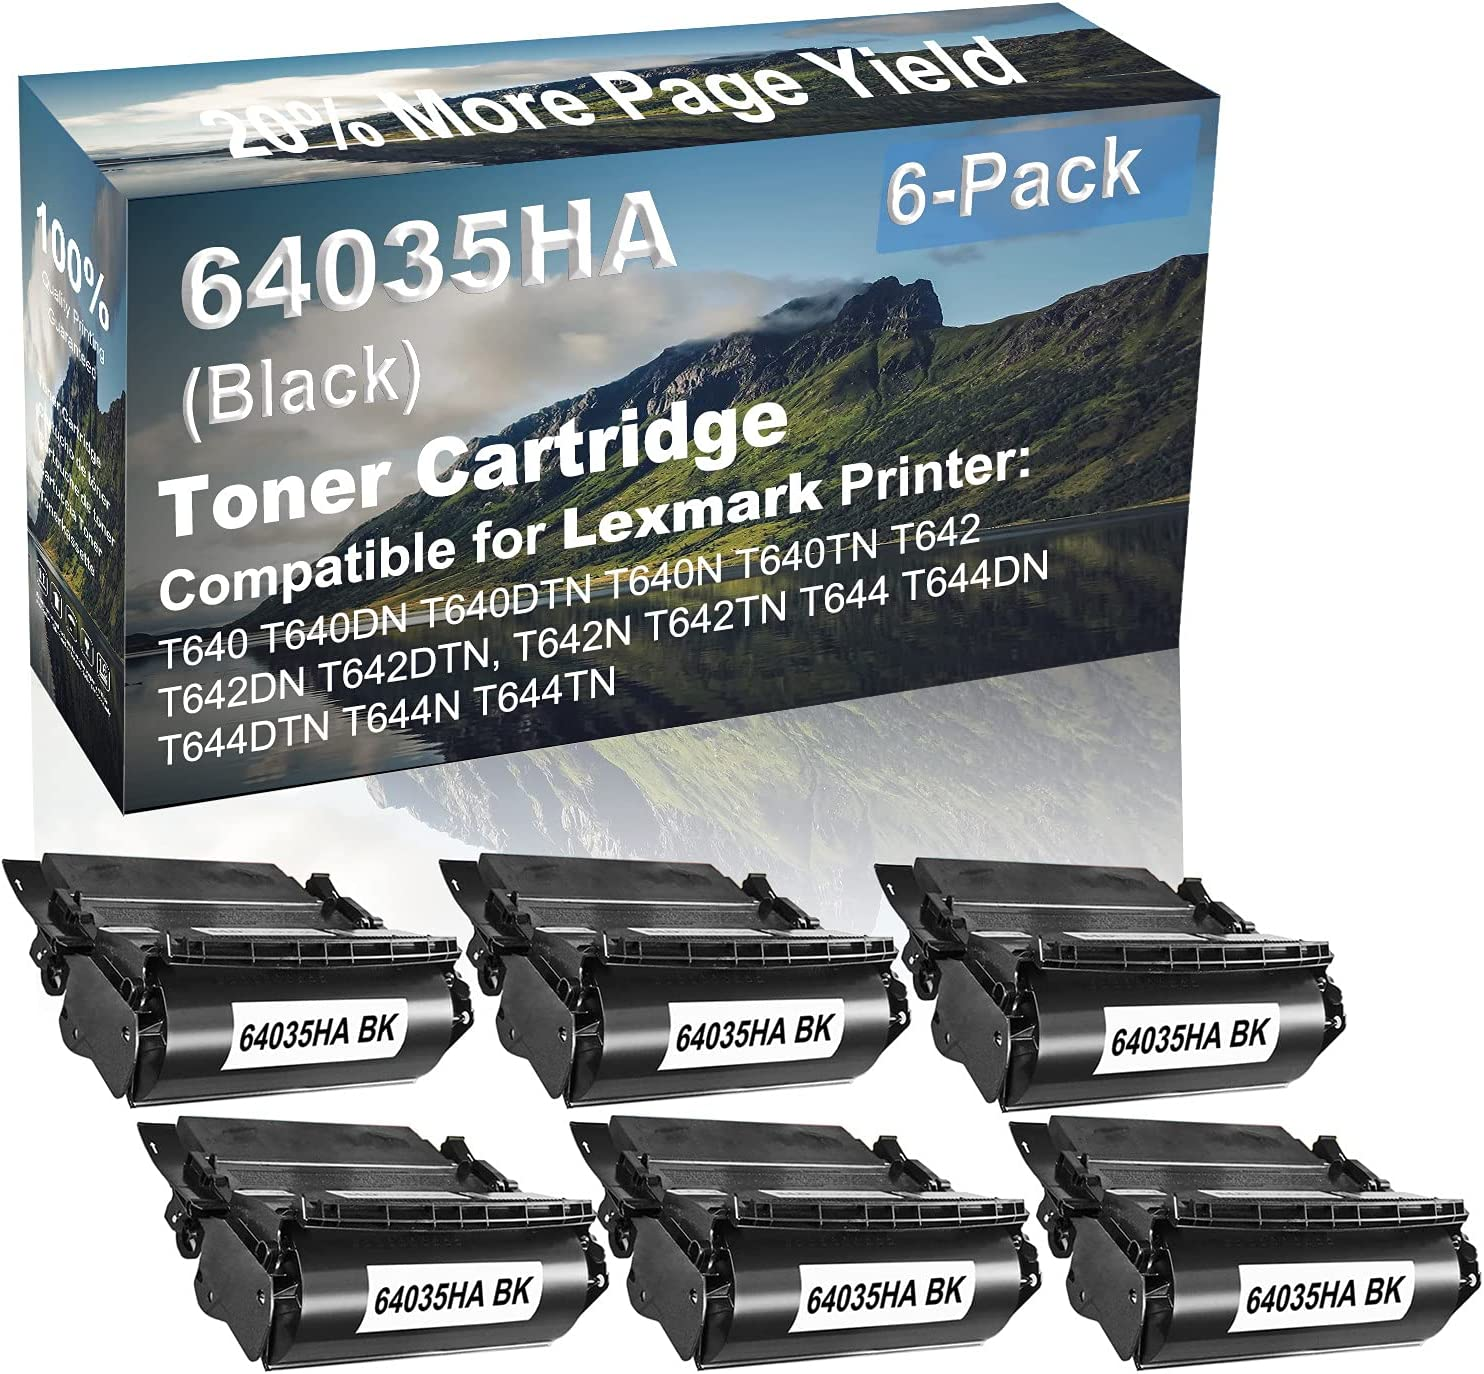 6-Pack Compatible High Yield T644, T644DN, T644DTN, T644N, T644TN Printer Cartridge Replacement for Lexmark 64035HA Toner Cartridge (Black)